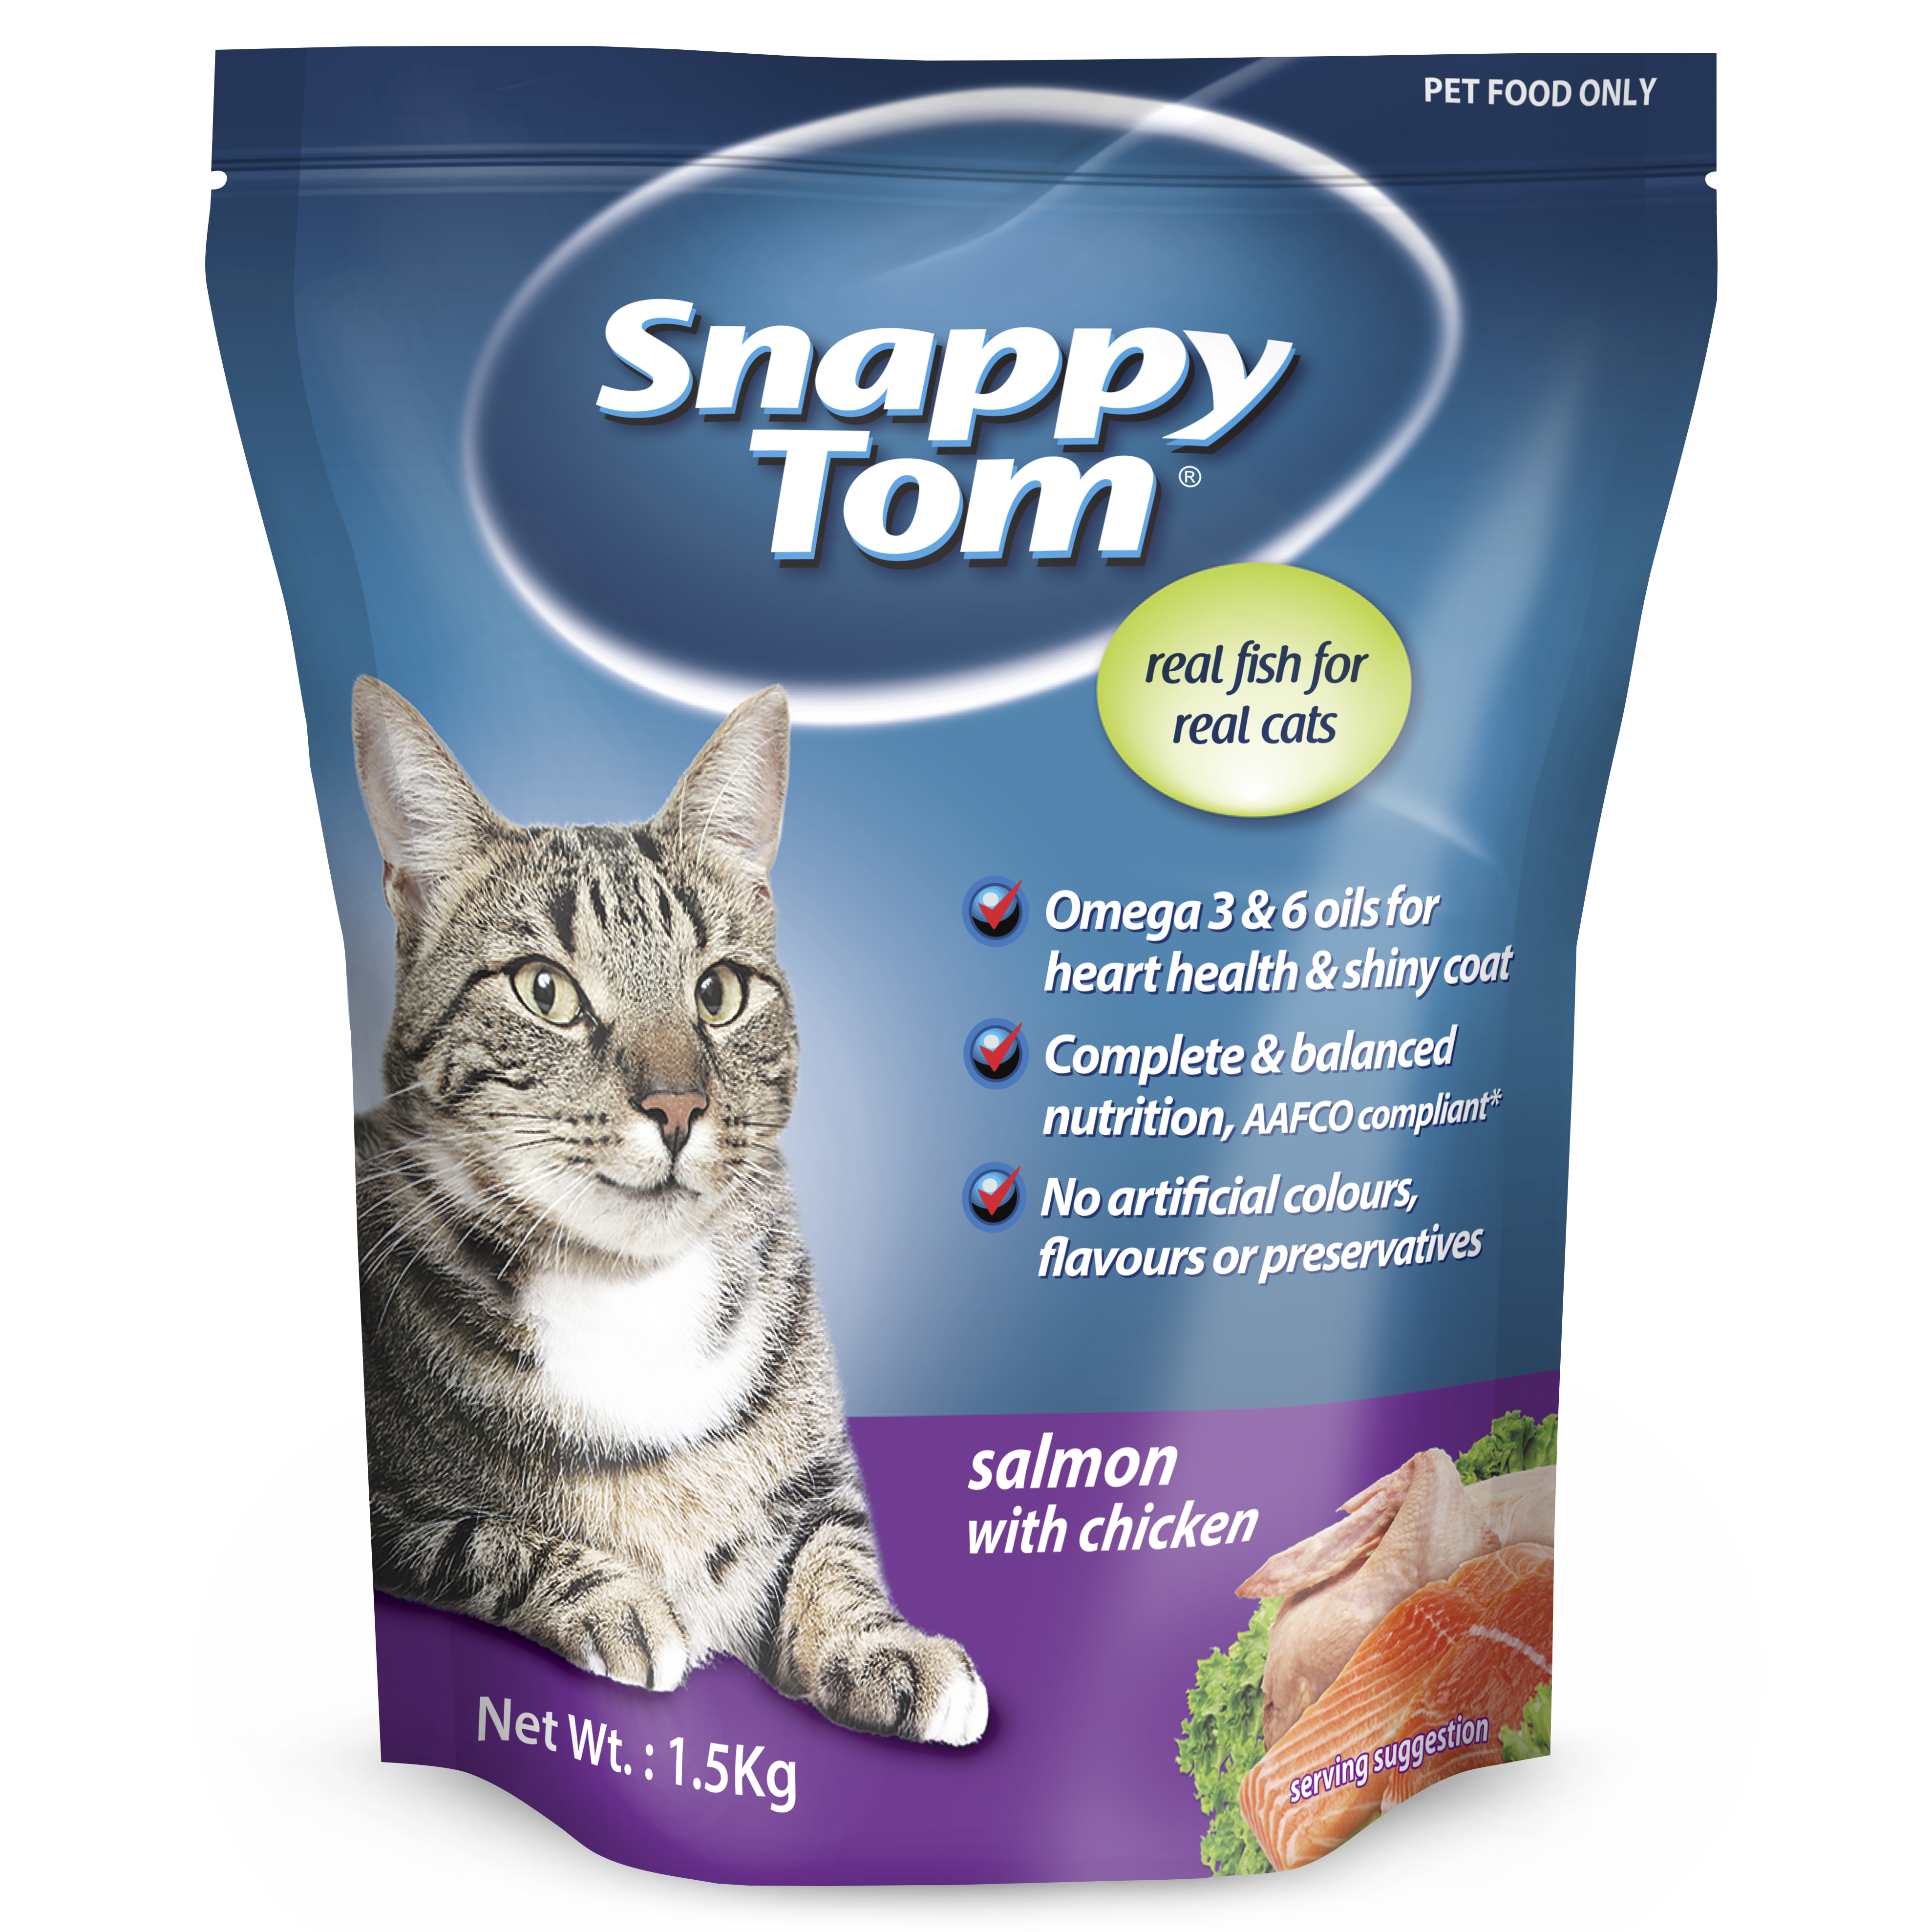 snappy-tom-salmon-with-chicken-1-5kg-1